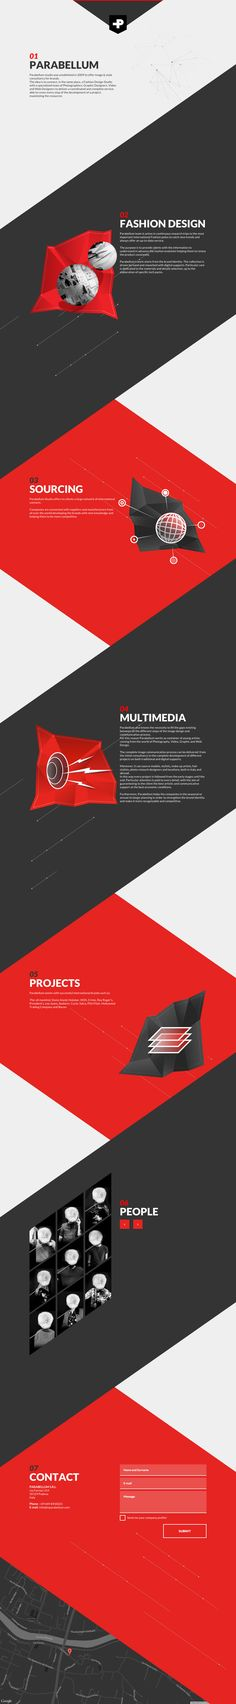 Slick One Pager with a unique diagonal-themed design for Italian fashion-focused digital agency, 'Parabellum Studio'. Nice touch as well with the hover-sensitive molecule background effect in the intro.